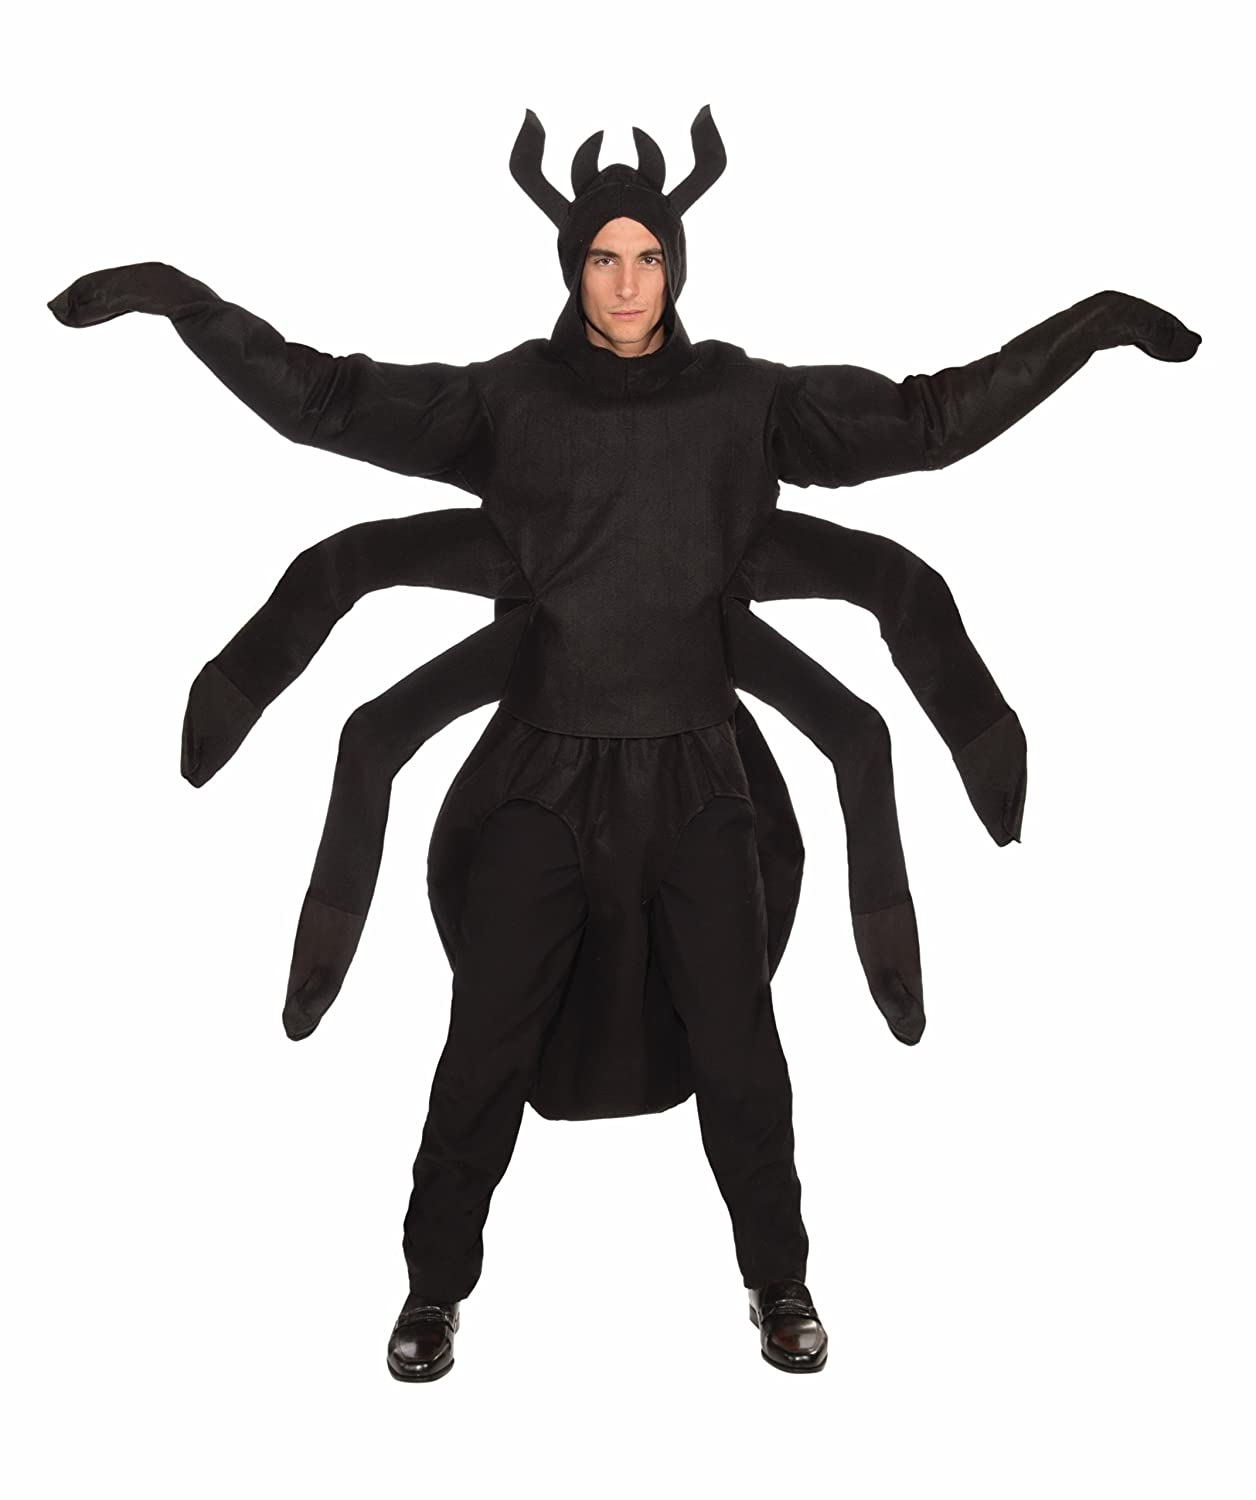 sc 1 st  Amazon.com & Amazon.com: Forum Creepy Spider Costume Black One Size: Clothing